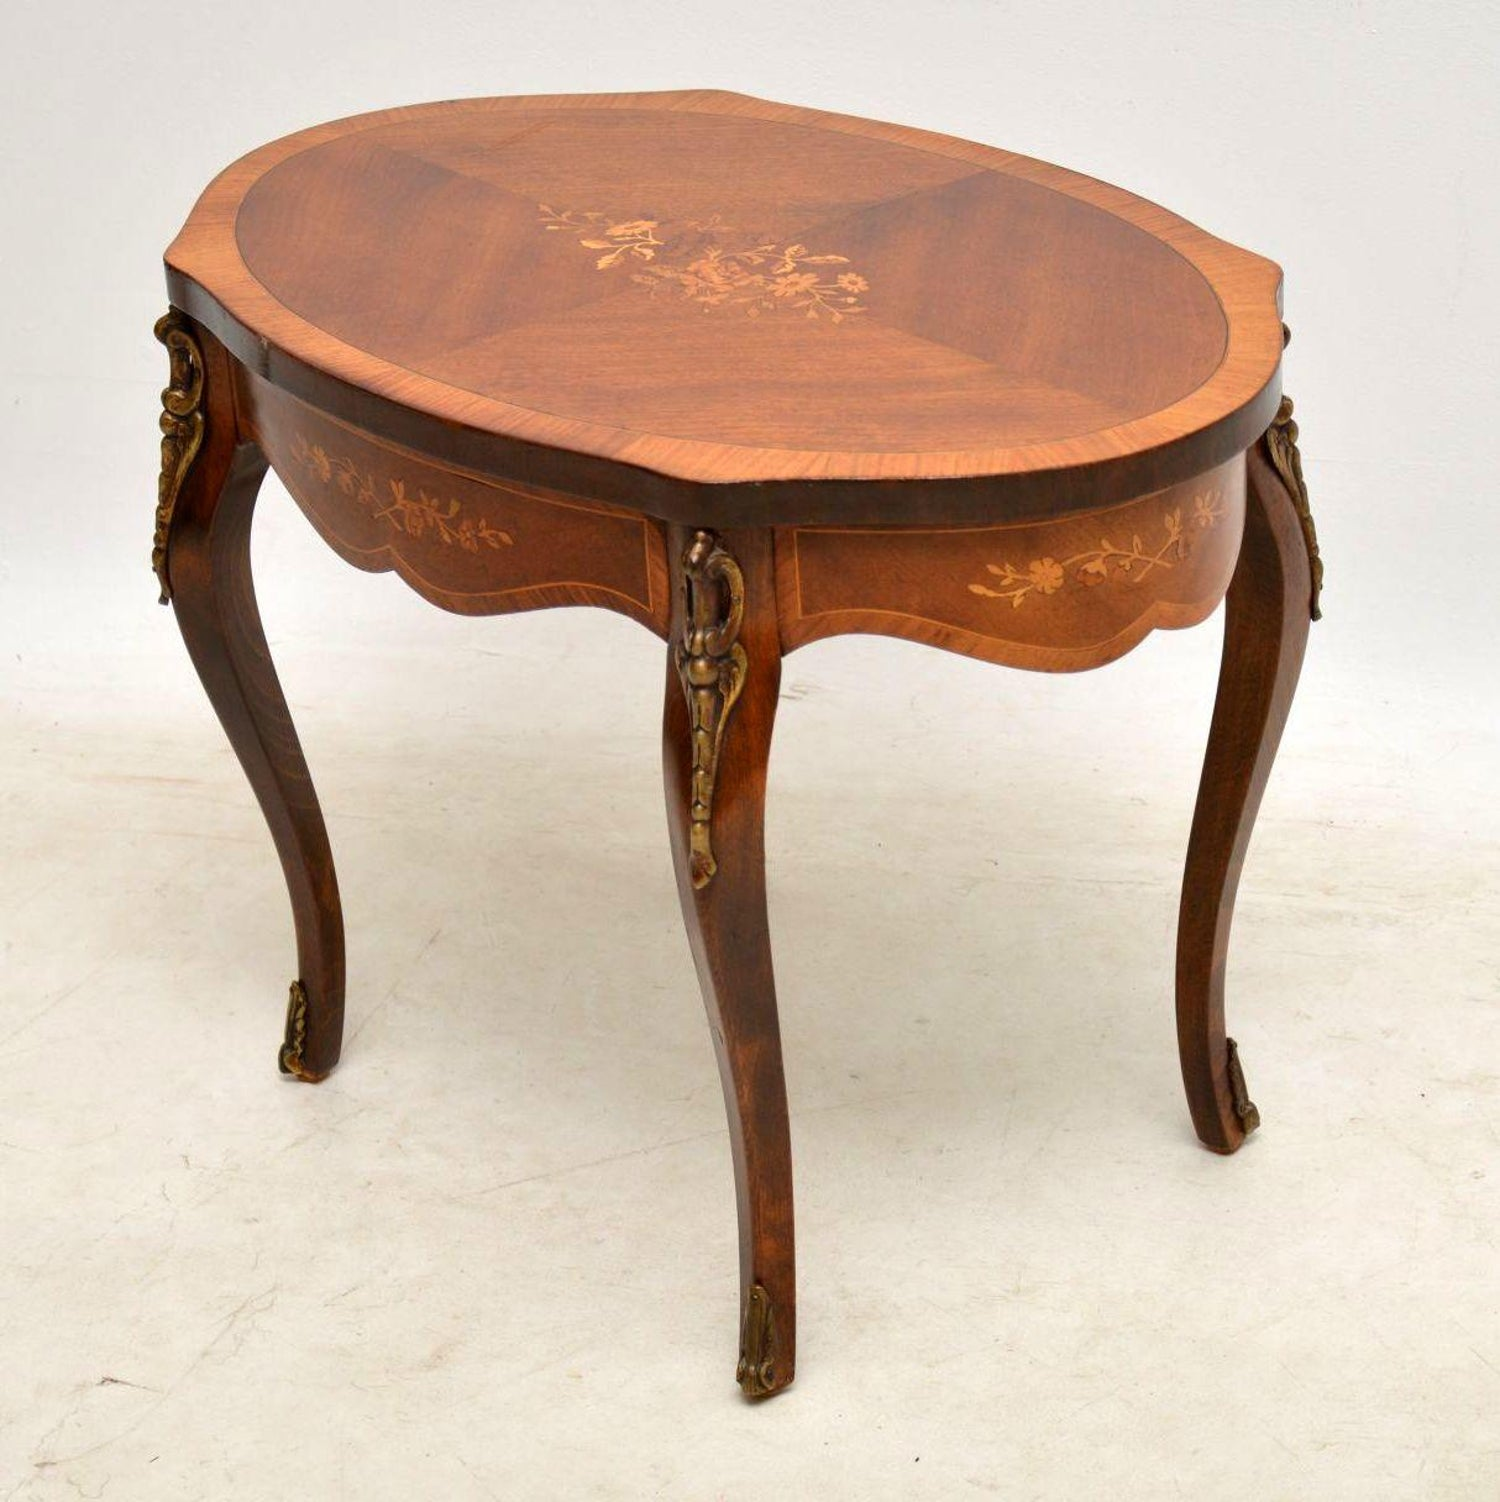 Antique Coffee Table.Antique French Inlaid Walnut Coffee Table With Marquetry